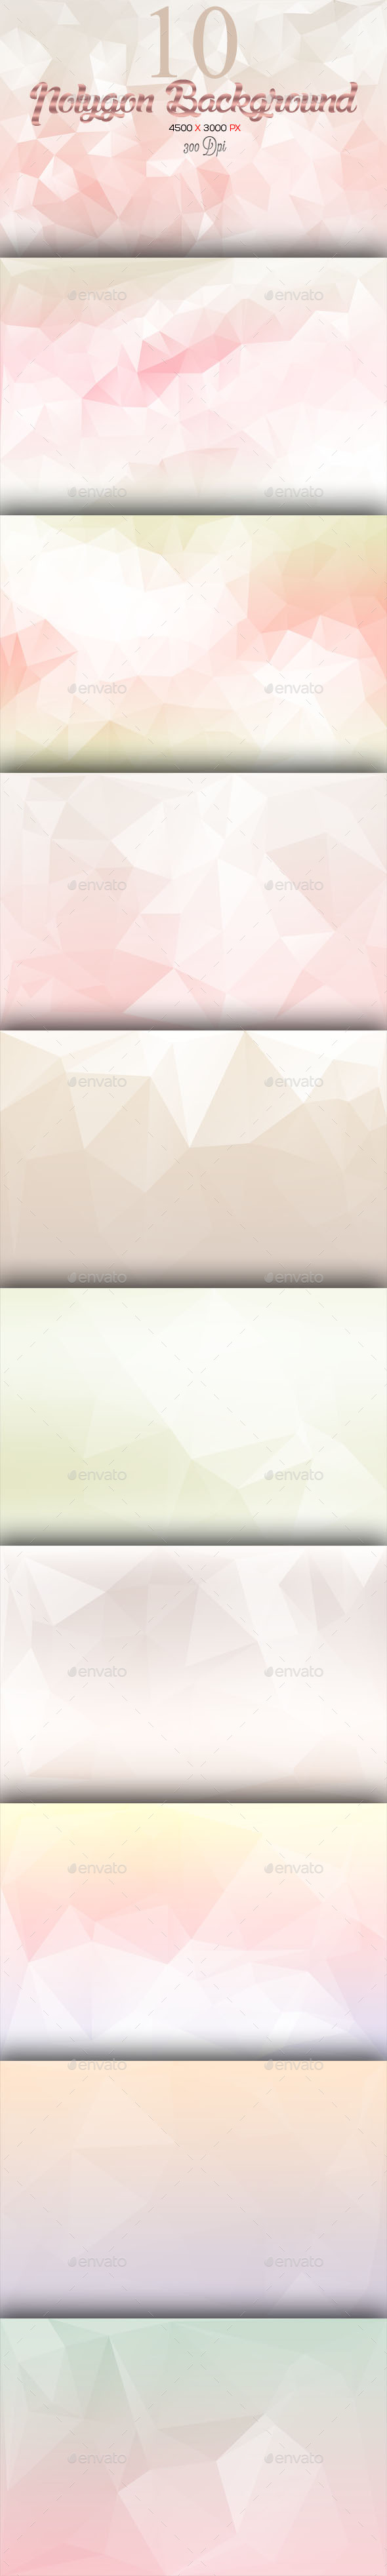 10 Polygon Background Part 7 - Abstract Backgrounds